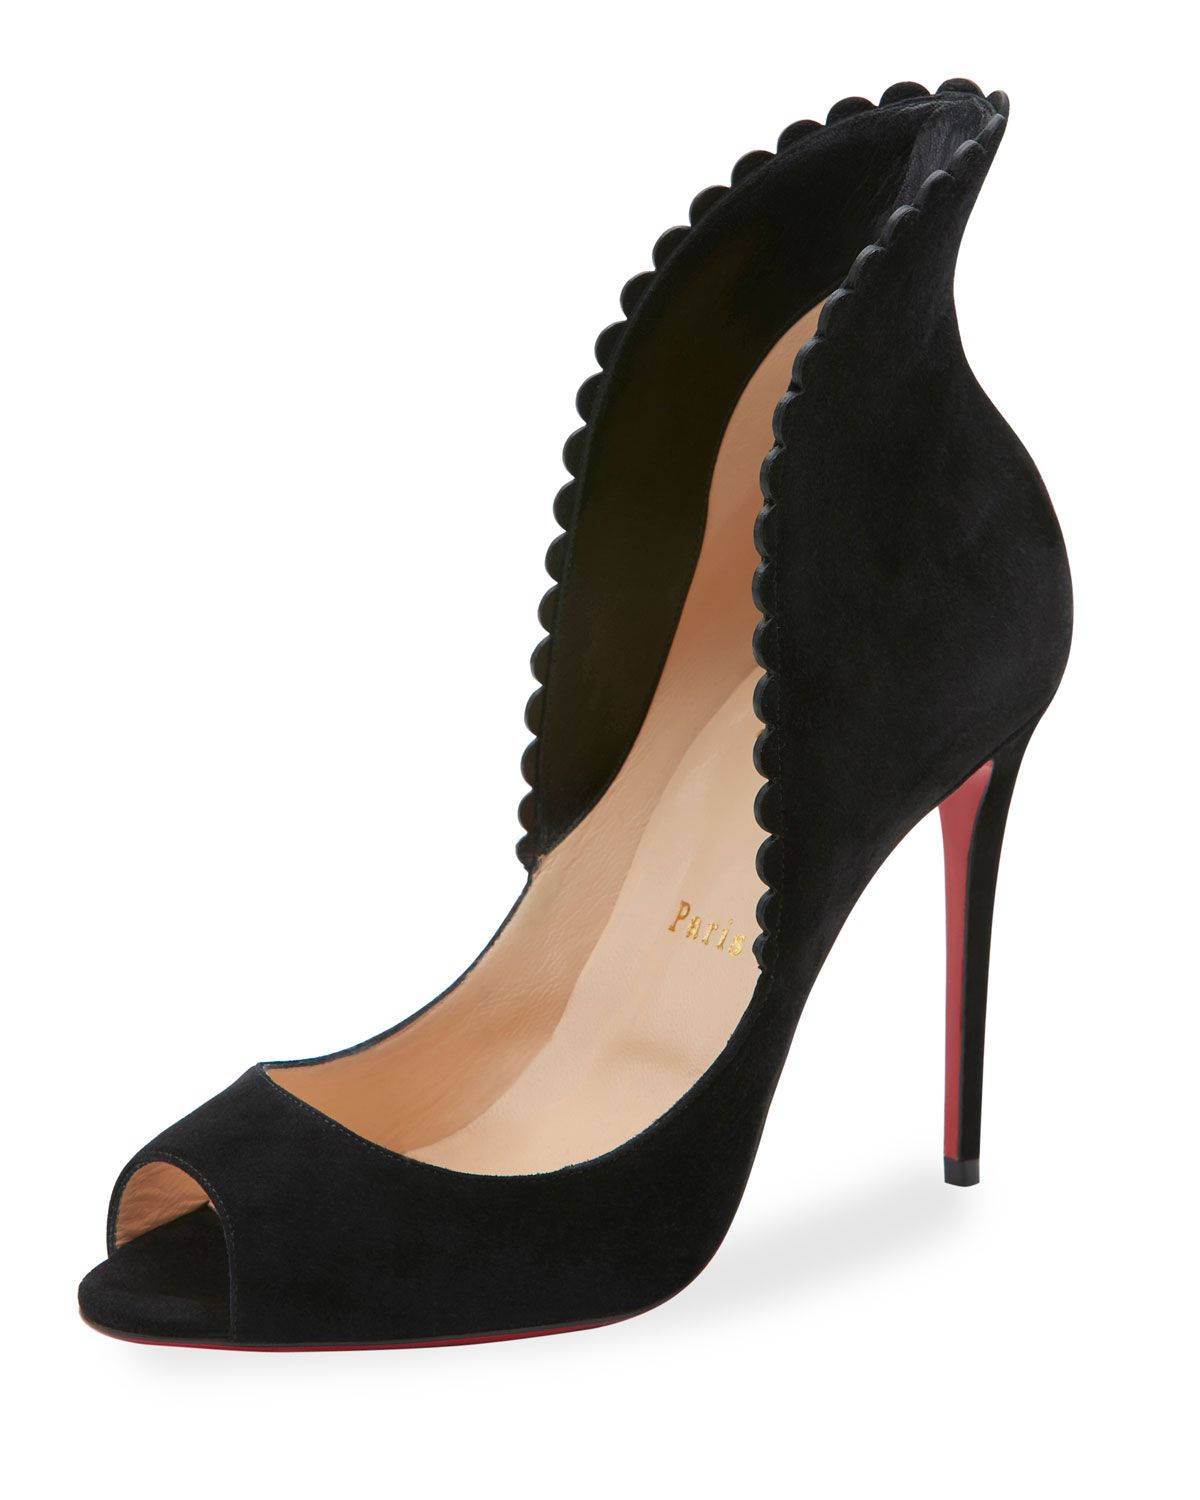 4bbce5c93d9 Pijonina Scalloped 100mm Red Sole Pump, Black | Shoes | Shoes ...